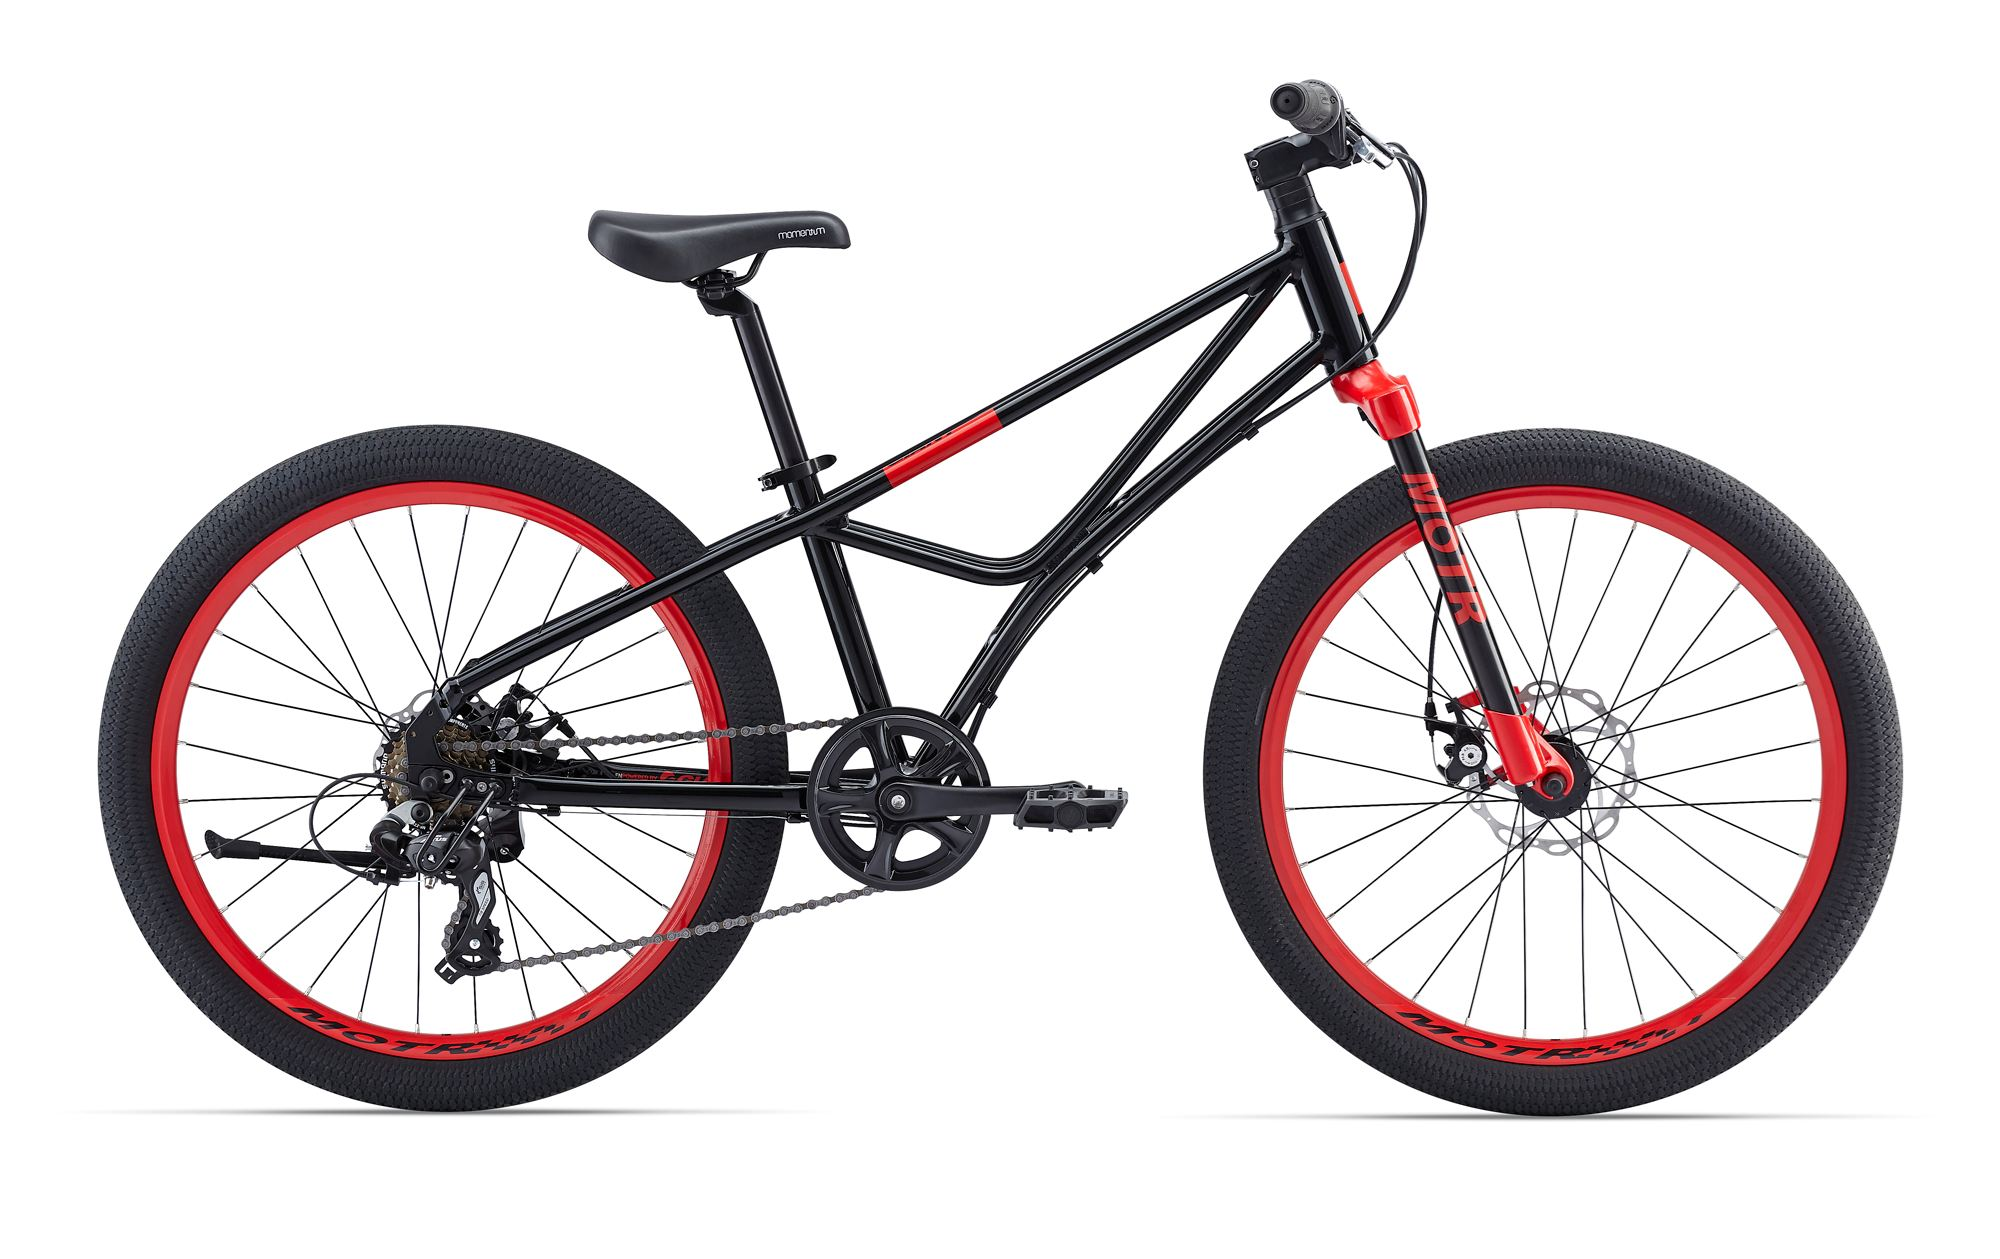 Giant Motr 24 Boys Bicycle 24 Inch 7S Disc - Black/Red